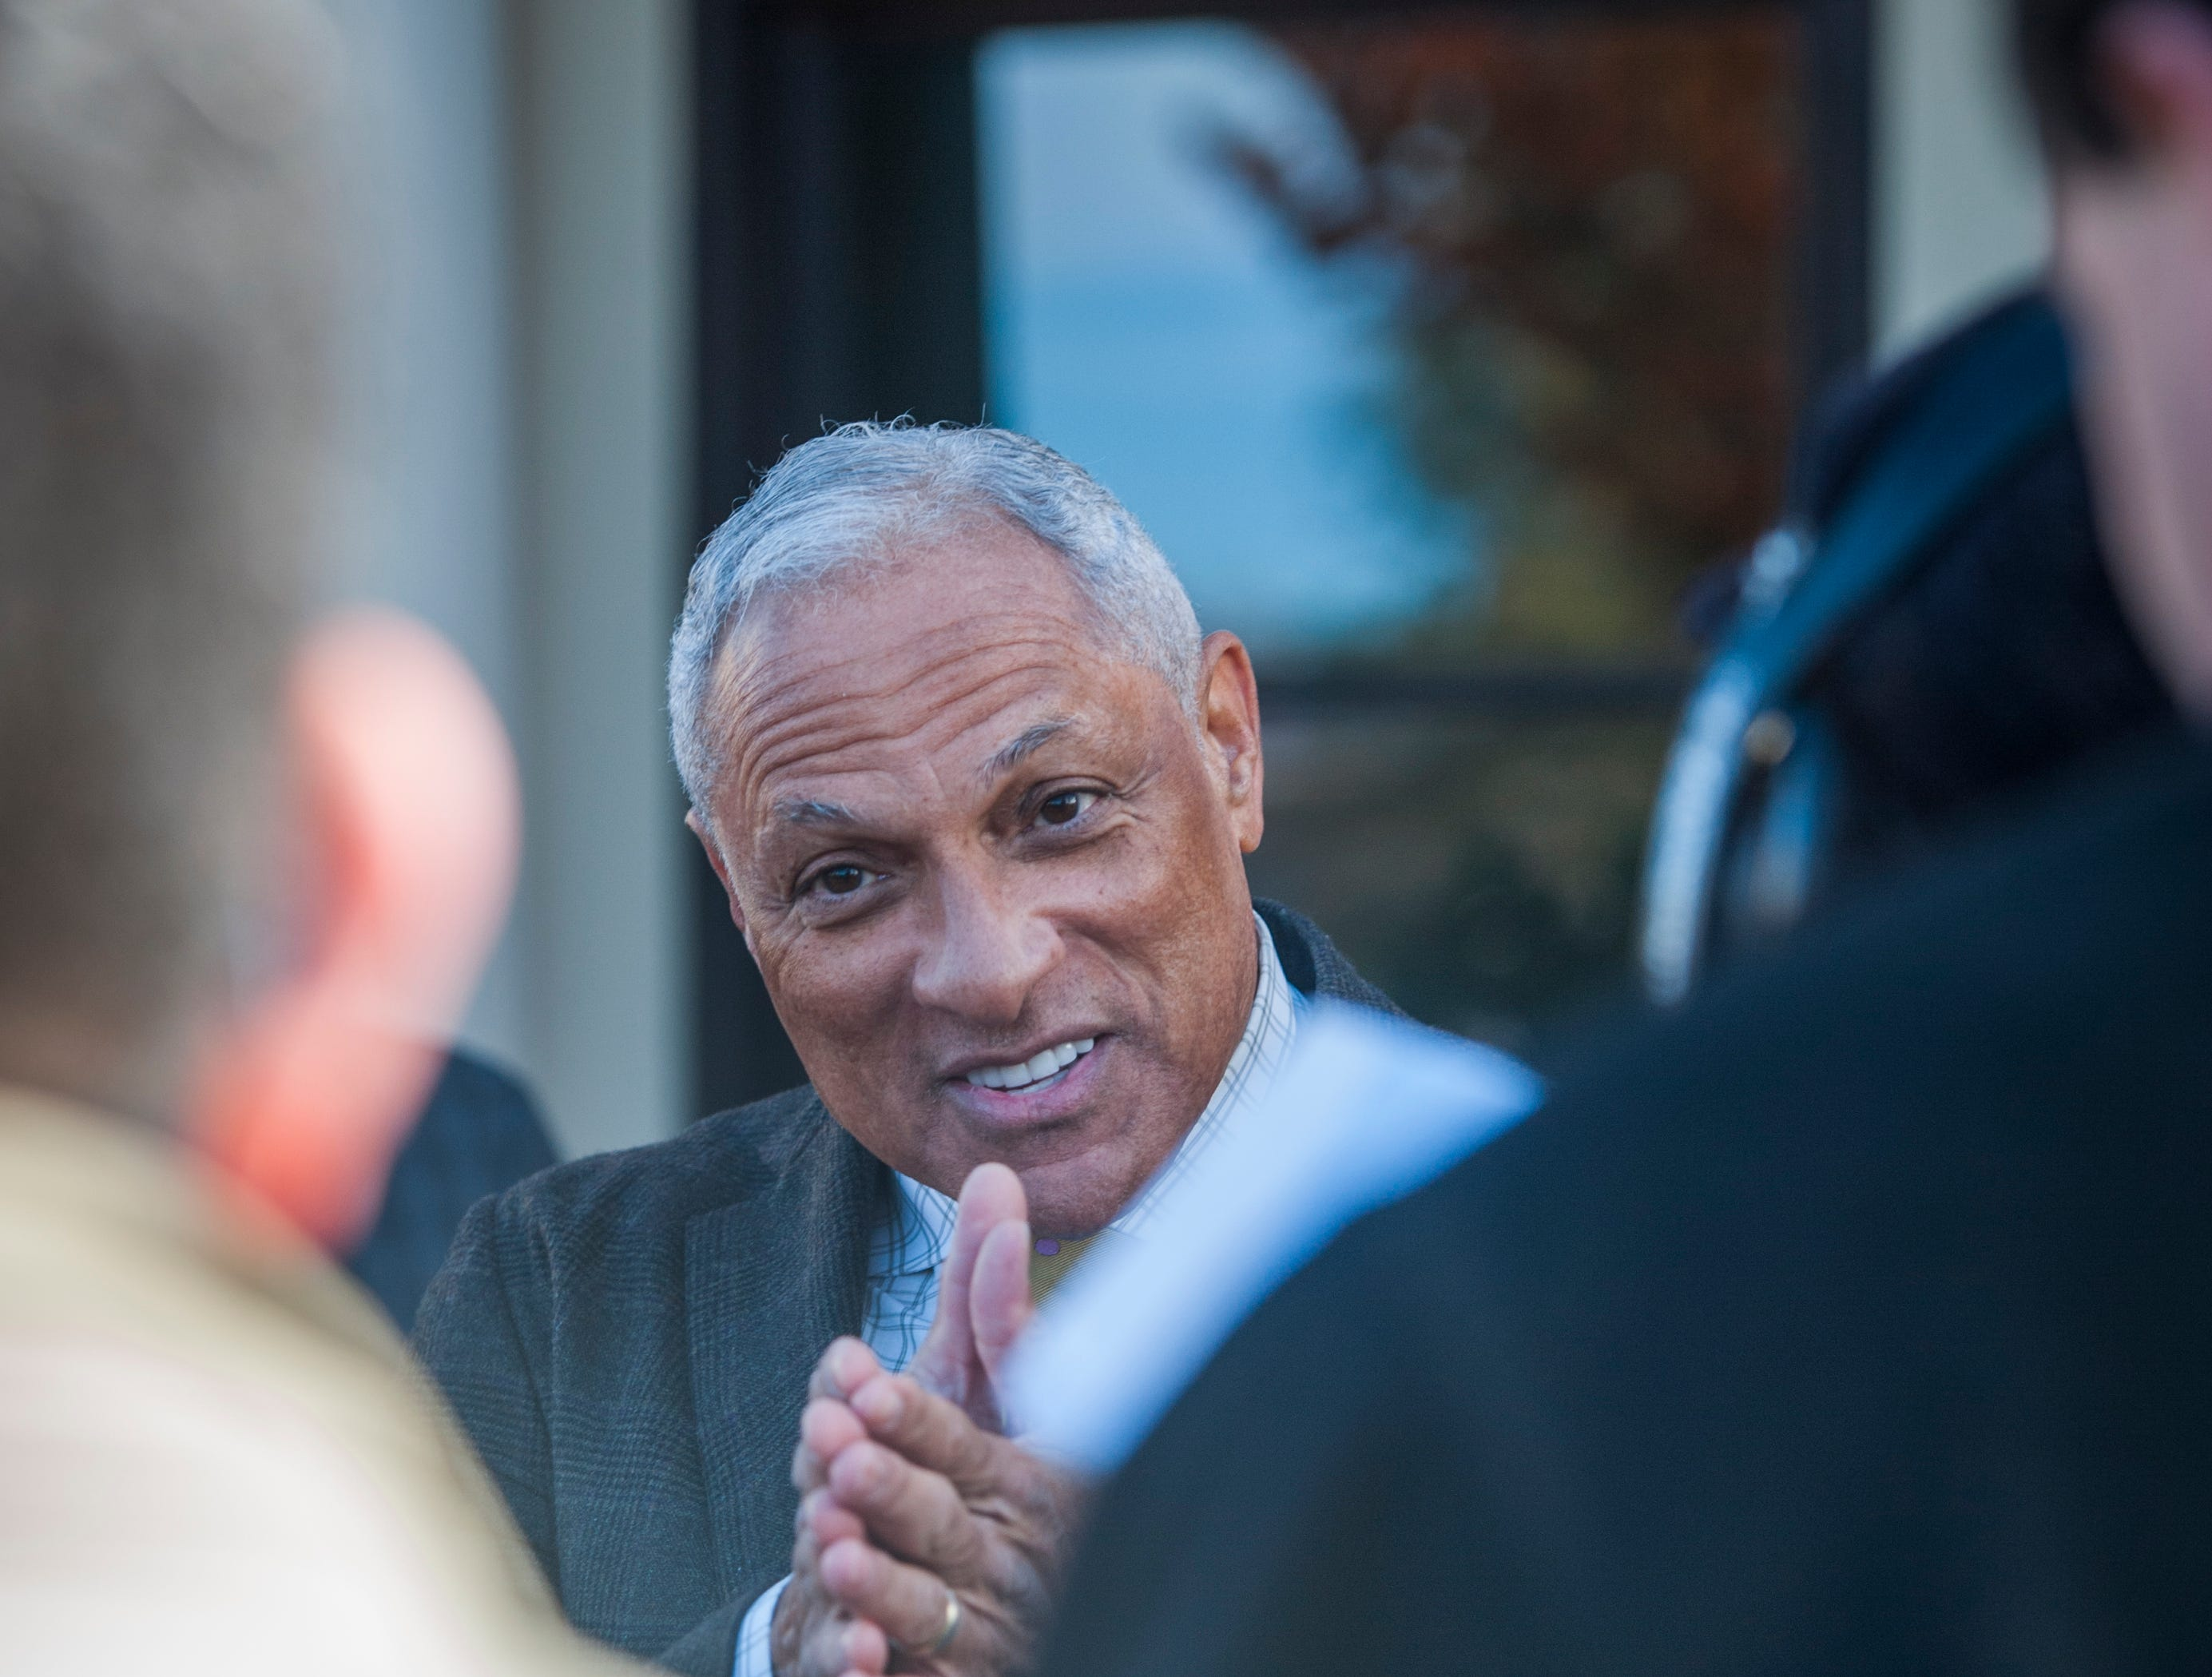 Senate candidate Mike Espy answers questions from media outside Local 463 in Ridgeland Monday, Nov. 26, after he and his wife, Portia, stopped by the restaurant for lunch. Voters head to the polls today, Tuesday, Nov. 27, for a runoff to see who will serve the final two years of retired Sen. Thad Cochran's term, Espy or Cindy Hyde-Smith.